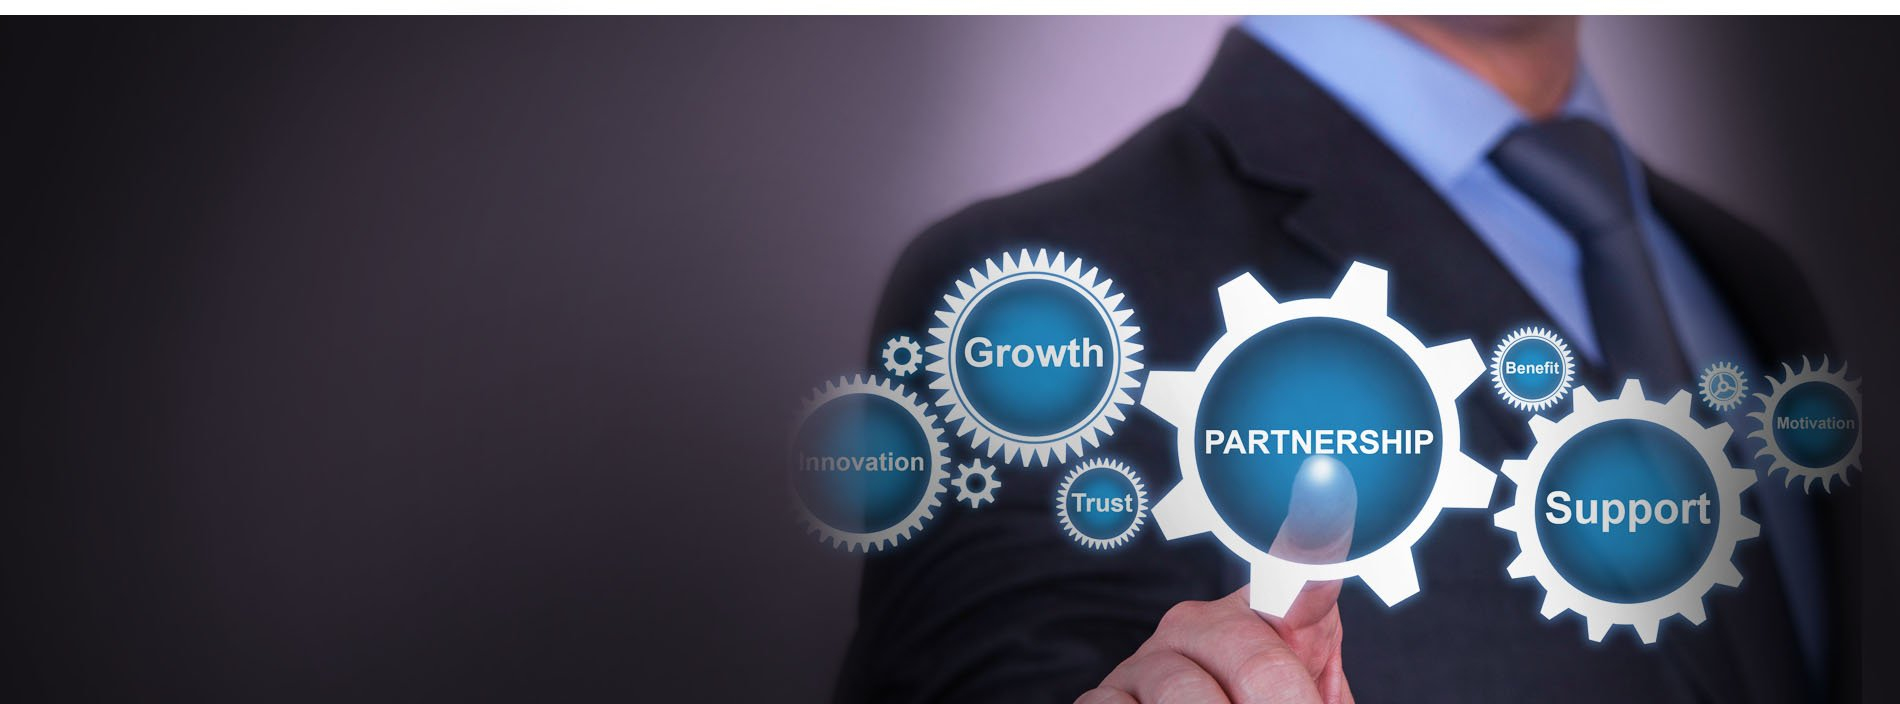 partners banner 1024x372